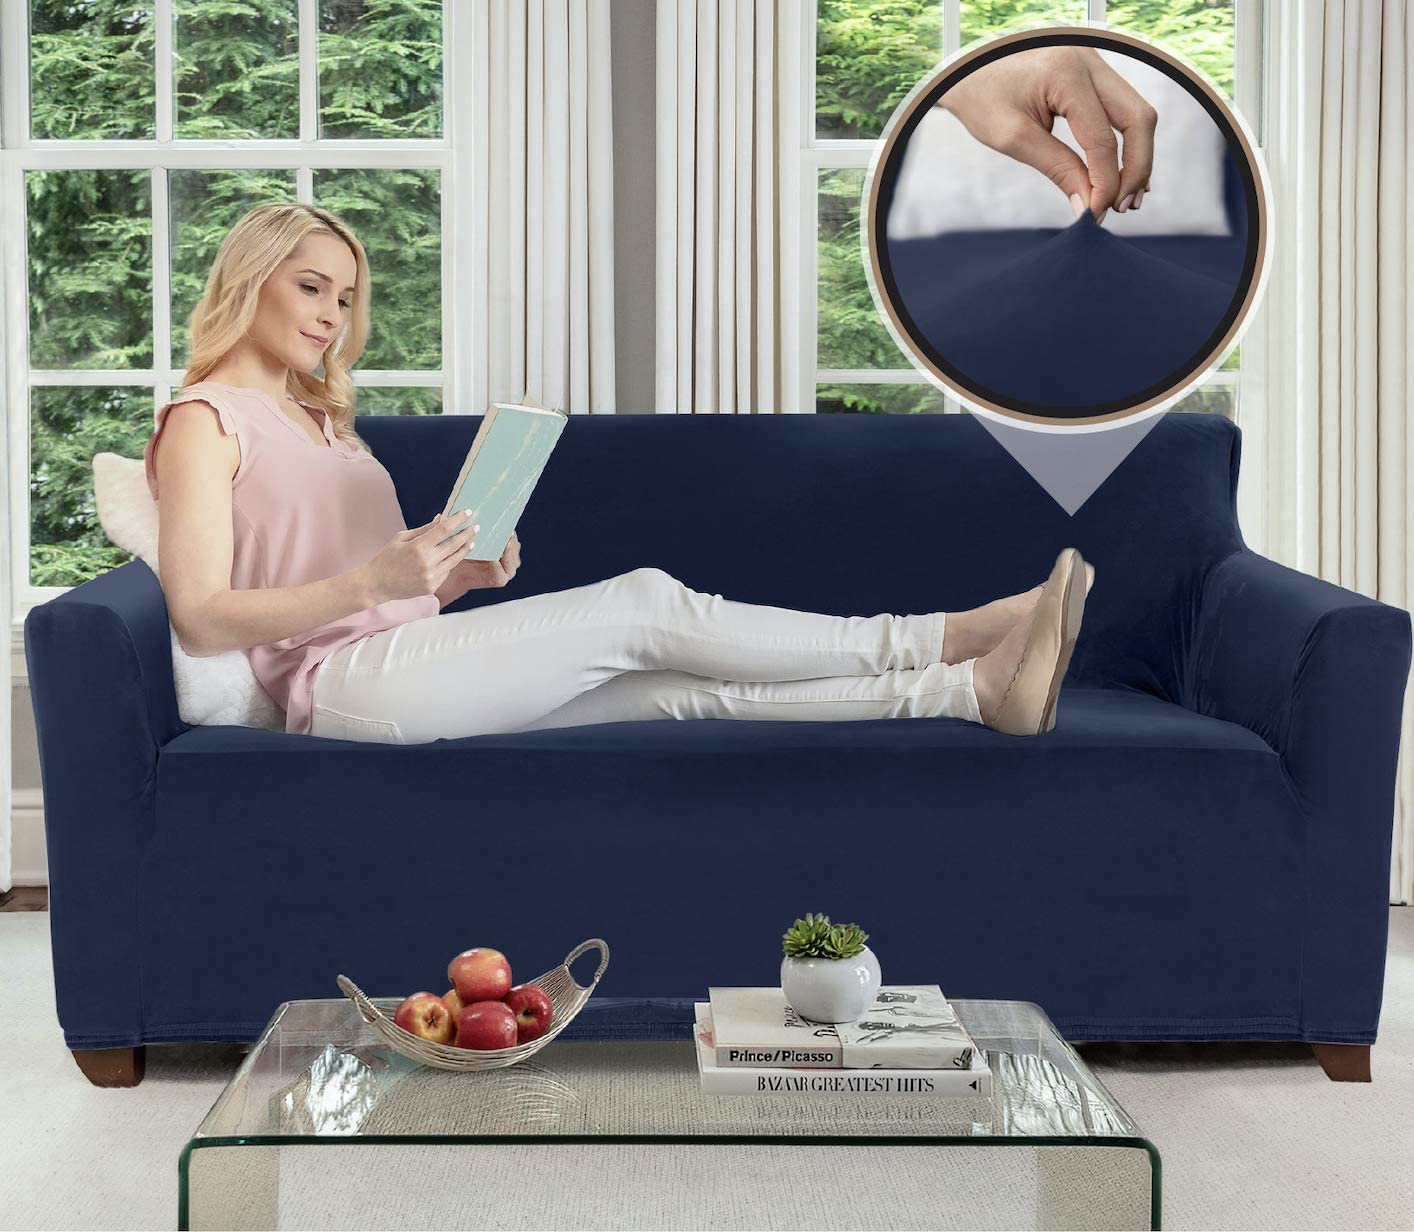 Gorilla Grip Original Velvet Fitted 1 Piece Small Sofa Slipcover, Stretch Up to 62 Inches, Soft Velvety Covers, Luxurious Slip Cover, Spandex Sofa Furniture Protector, with Fasteners, Navy Blue